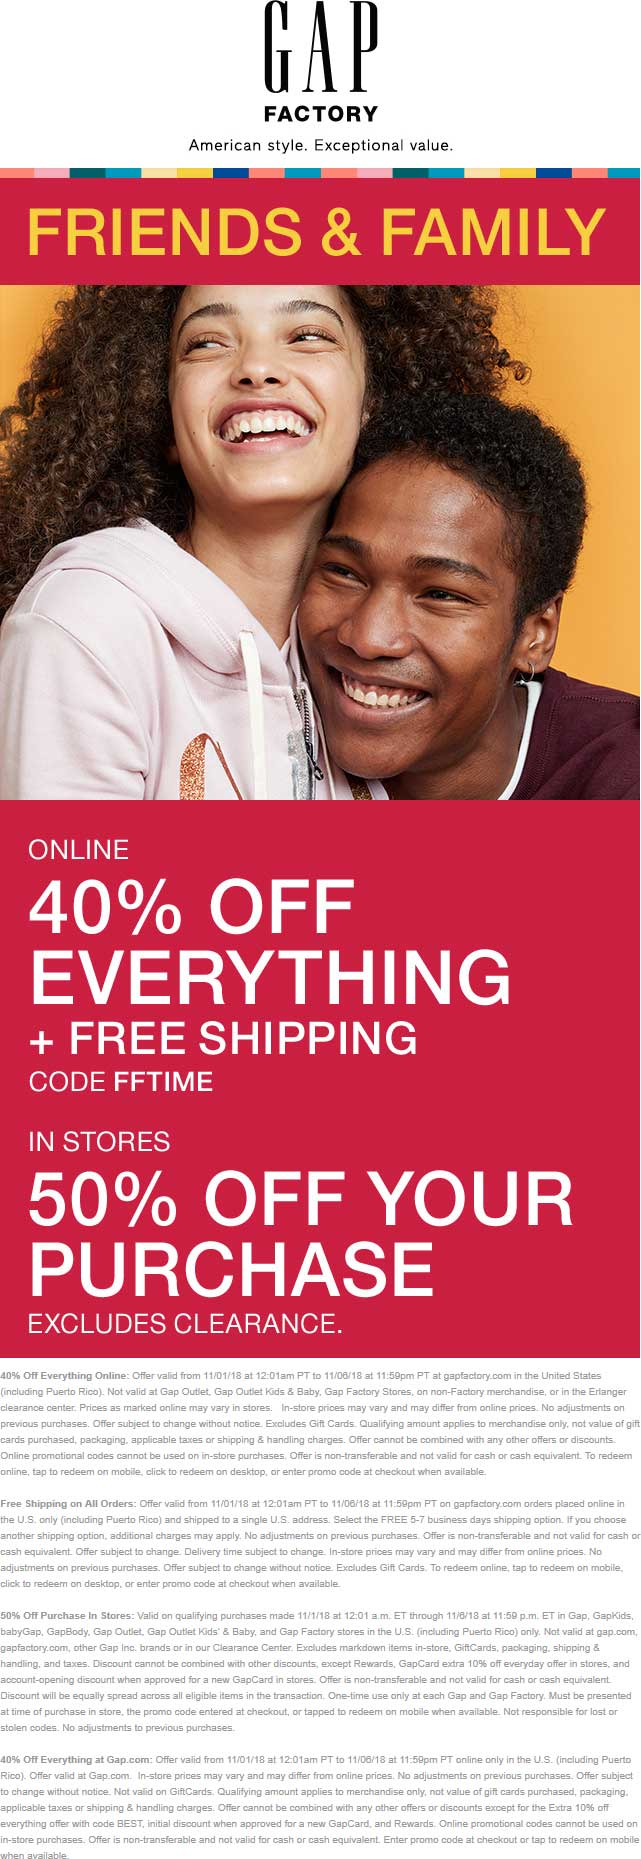 Gap Factory Coupon July 2019 50% off at Gap Factory, or 40% online via promo code FFTIME